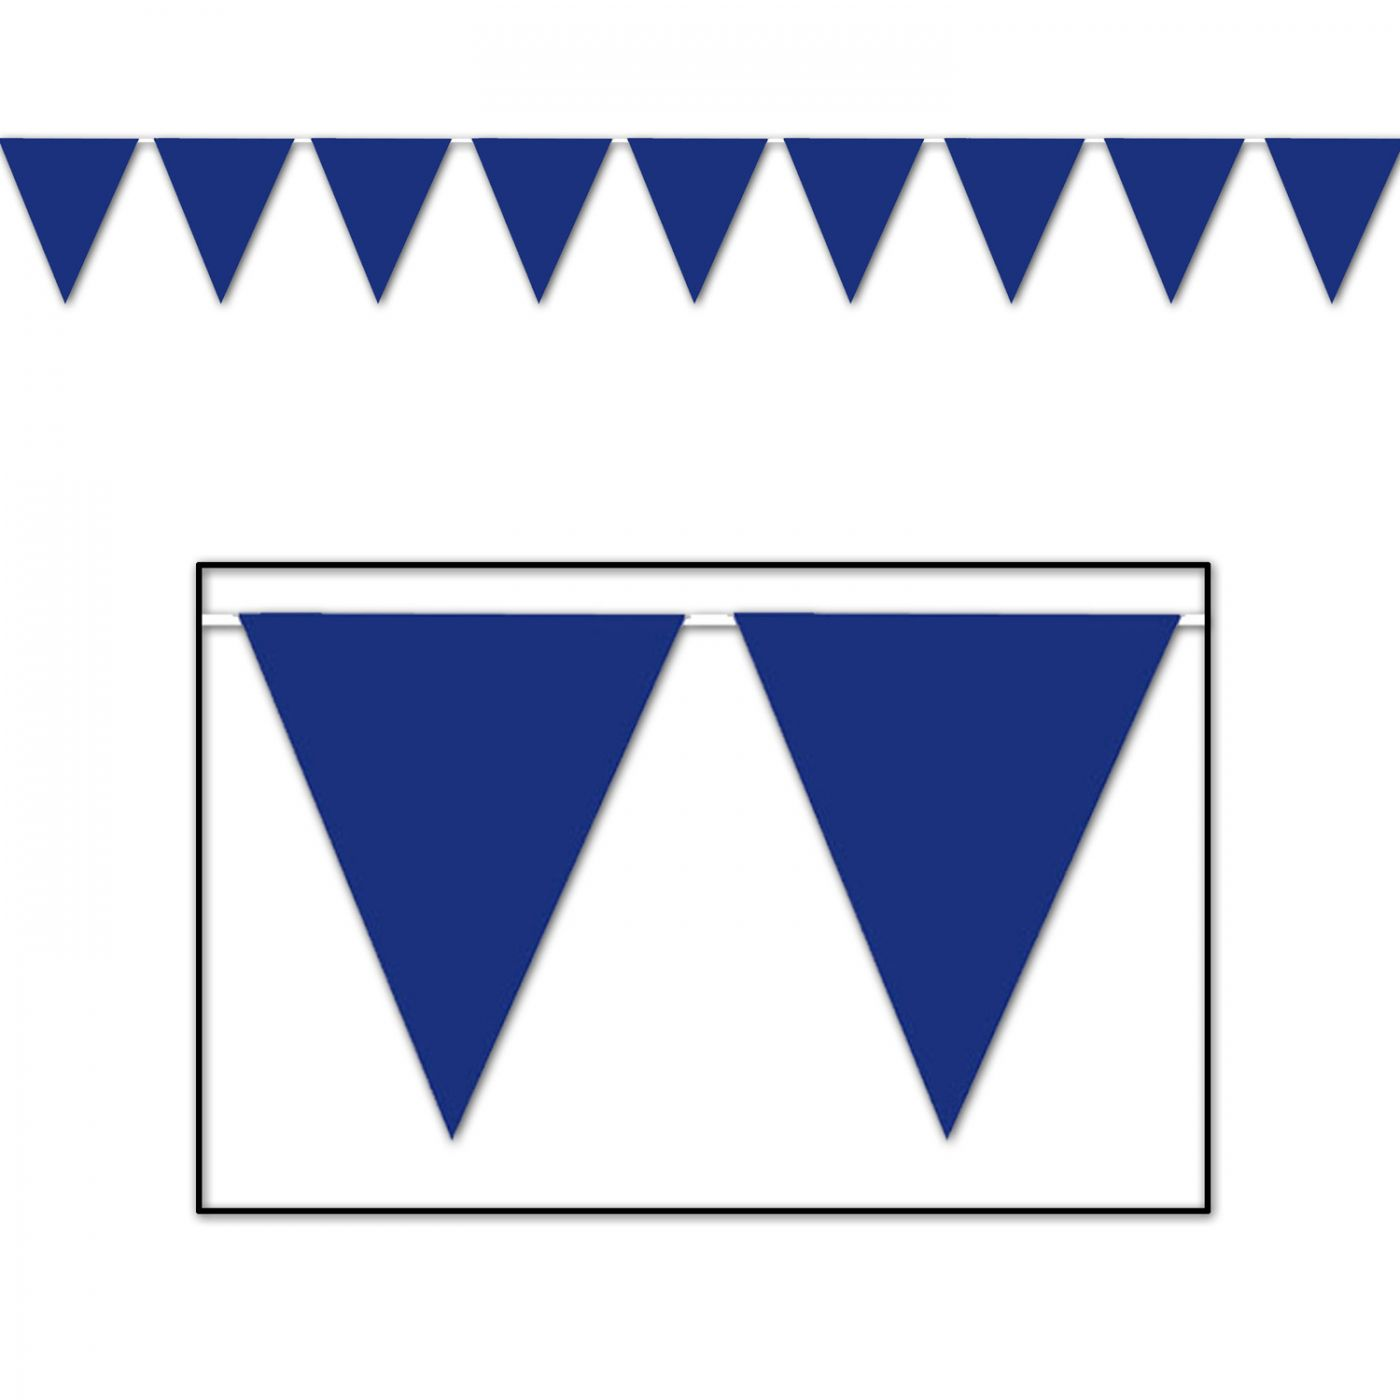 Image of Blue Pennant Banner